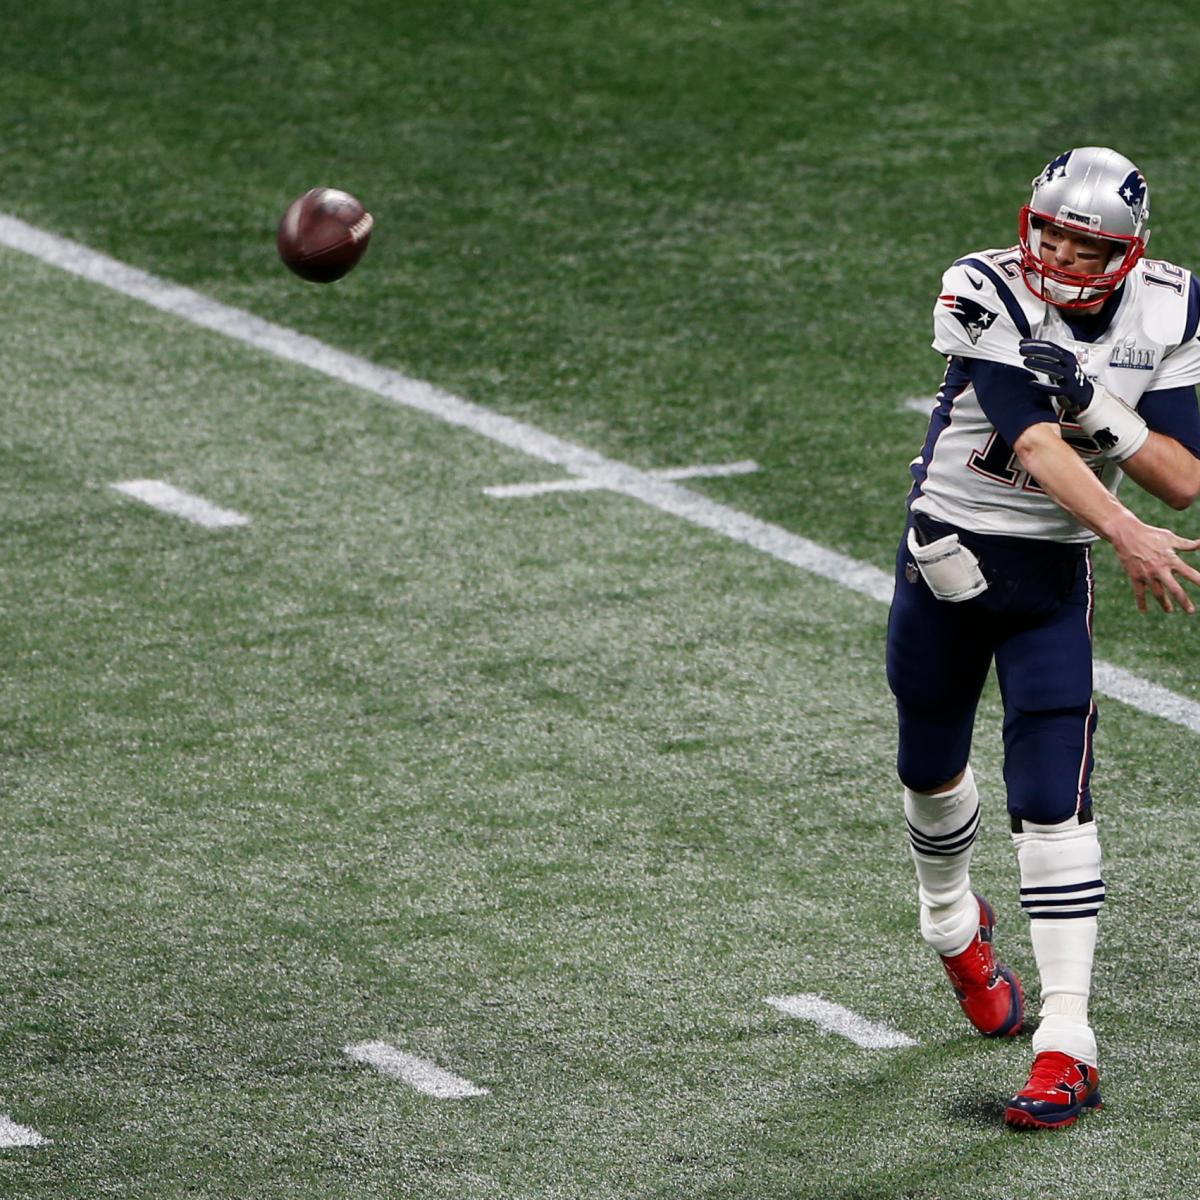 New England Patriots quarterback Tom Brady got caught in the middle of the ongoing faux rivalry between late-night television show host Jimmy Kimmel and actor Matt Damon on Jimmy ...